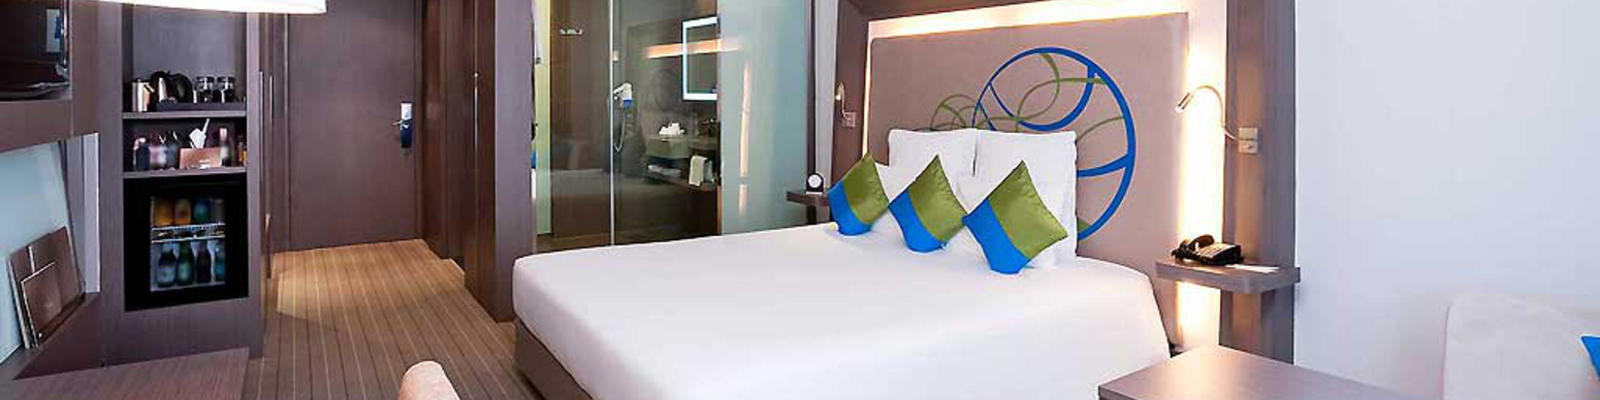 An internal view of a hotel room looking over the bed to the door